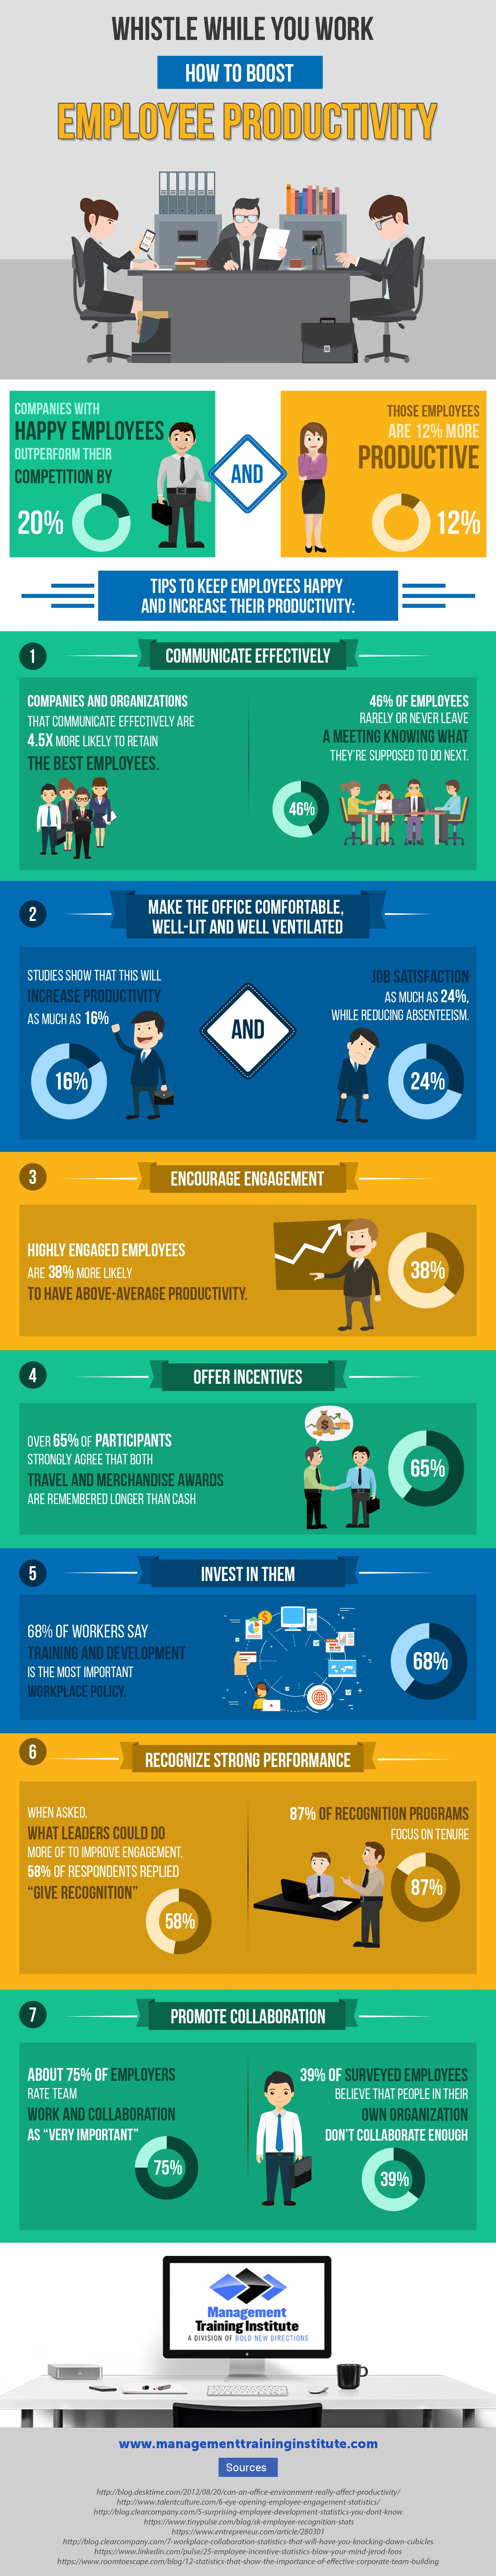 Employee Productivity Infographic